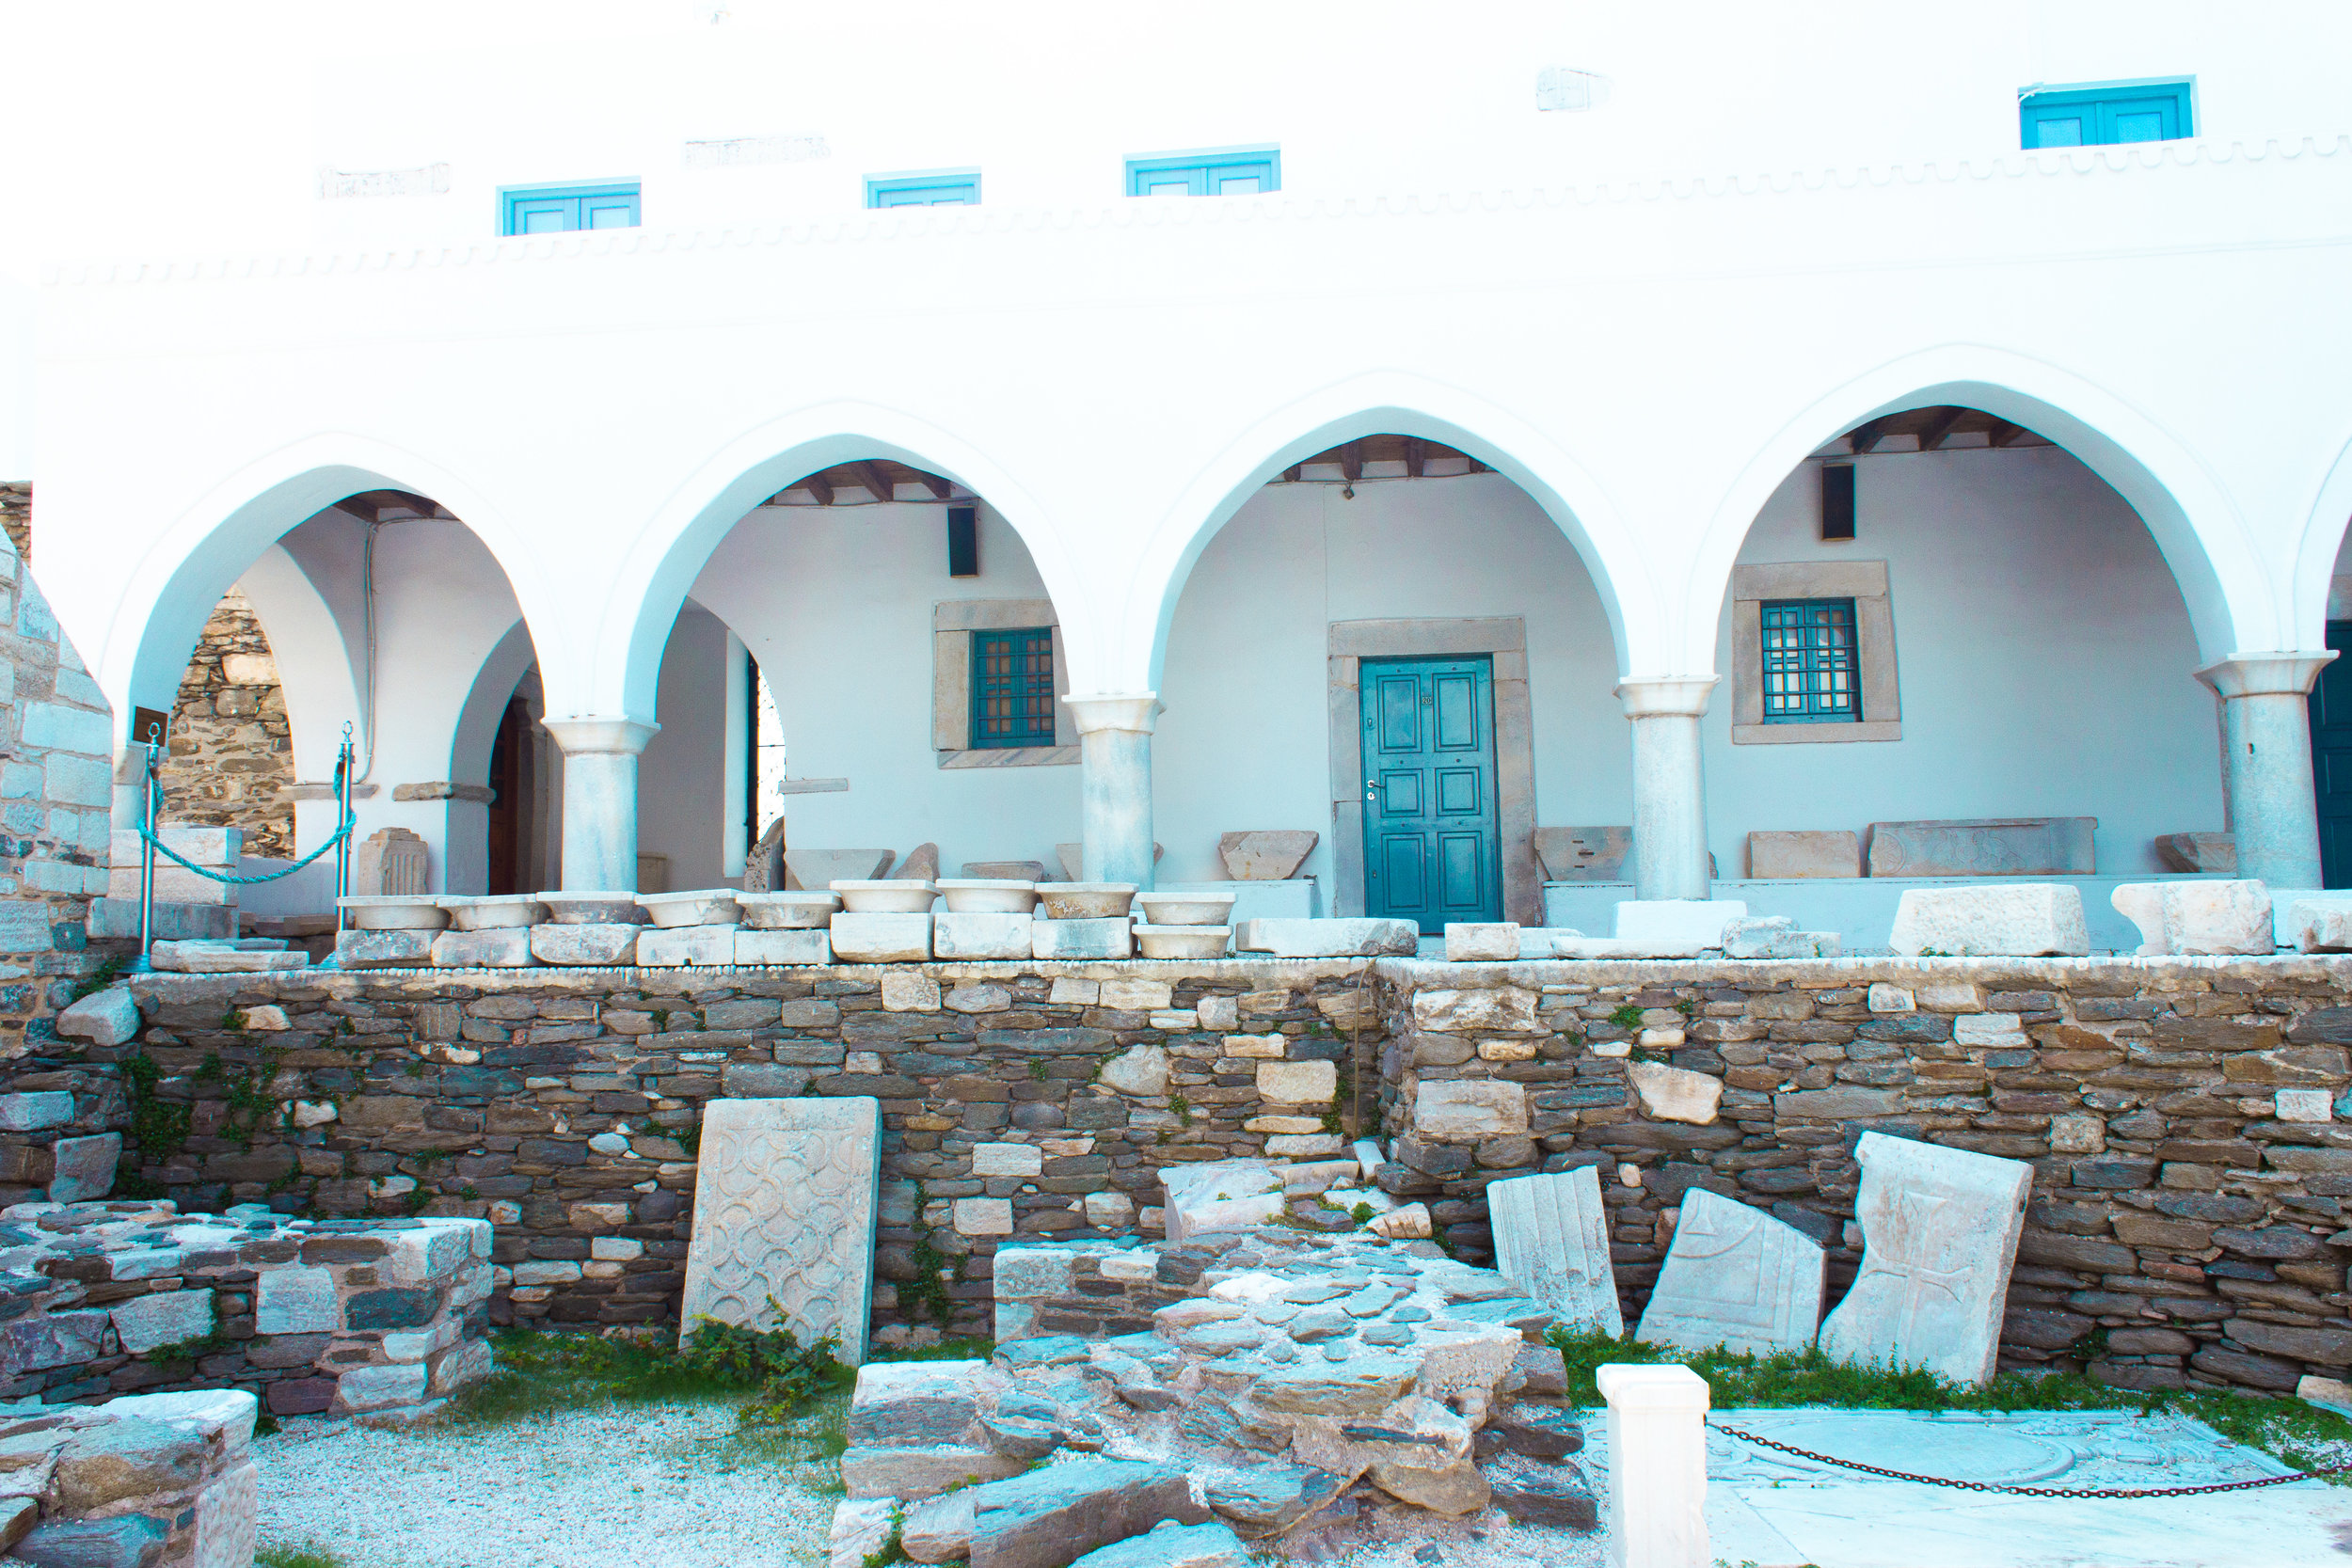 Inside the courtyard of the Church of 100 Doors